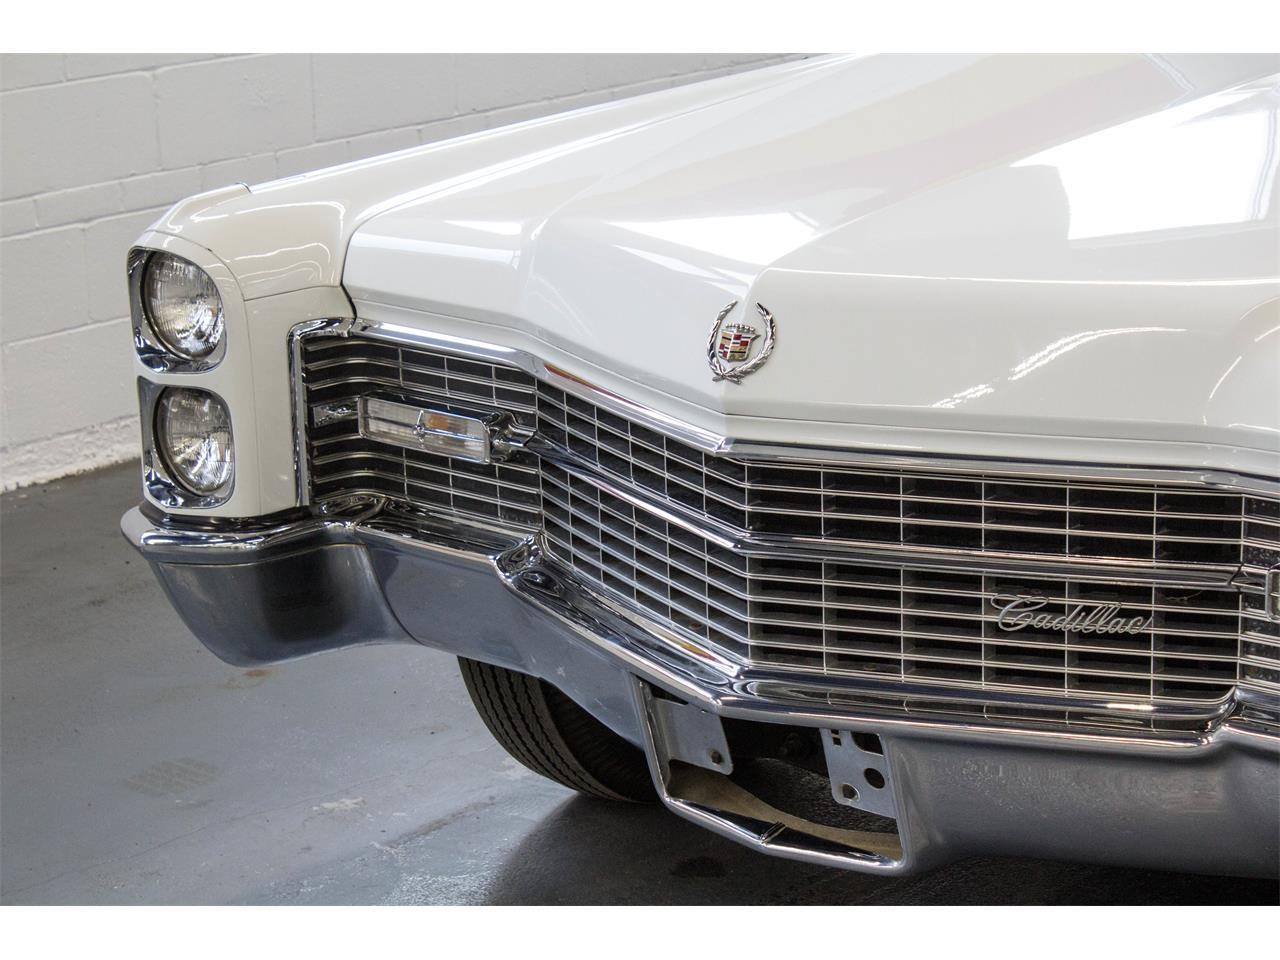 Large Picture of 1966 Cadillac Fleetwood Limousine located in Quebec - $49,995.00 Offered by John Scotti Classic Cars - NKXQ